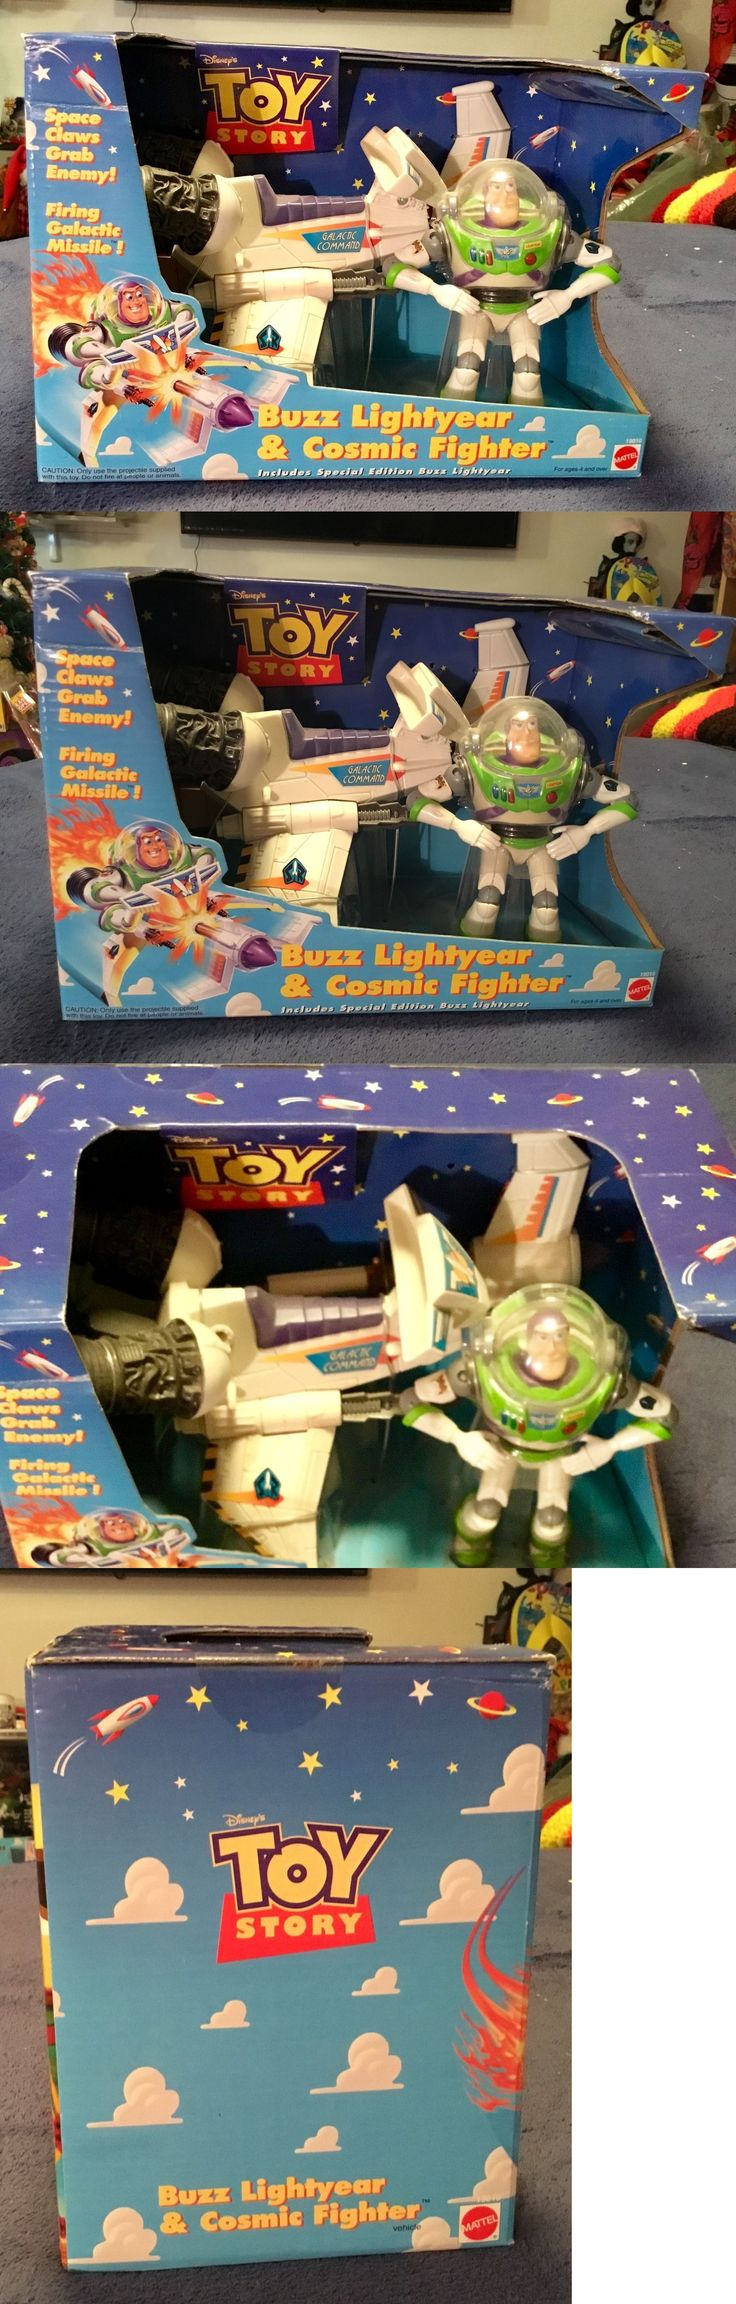 Toy story of terror 1 2 3 buzz lightyear of star command for sale - Toy Story 19223 Disney 1998 Thinkway Toys Toy Story 5 Buzz Lightyear And Cosmic Fighter